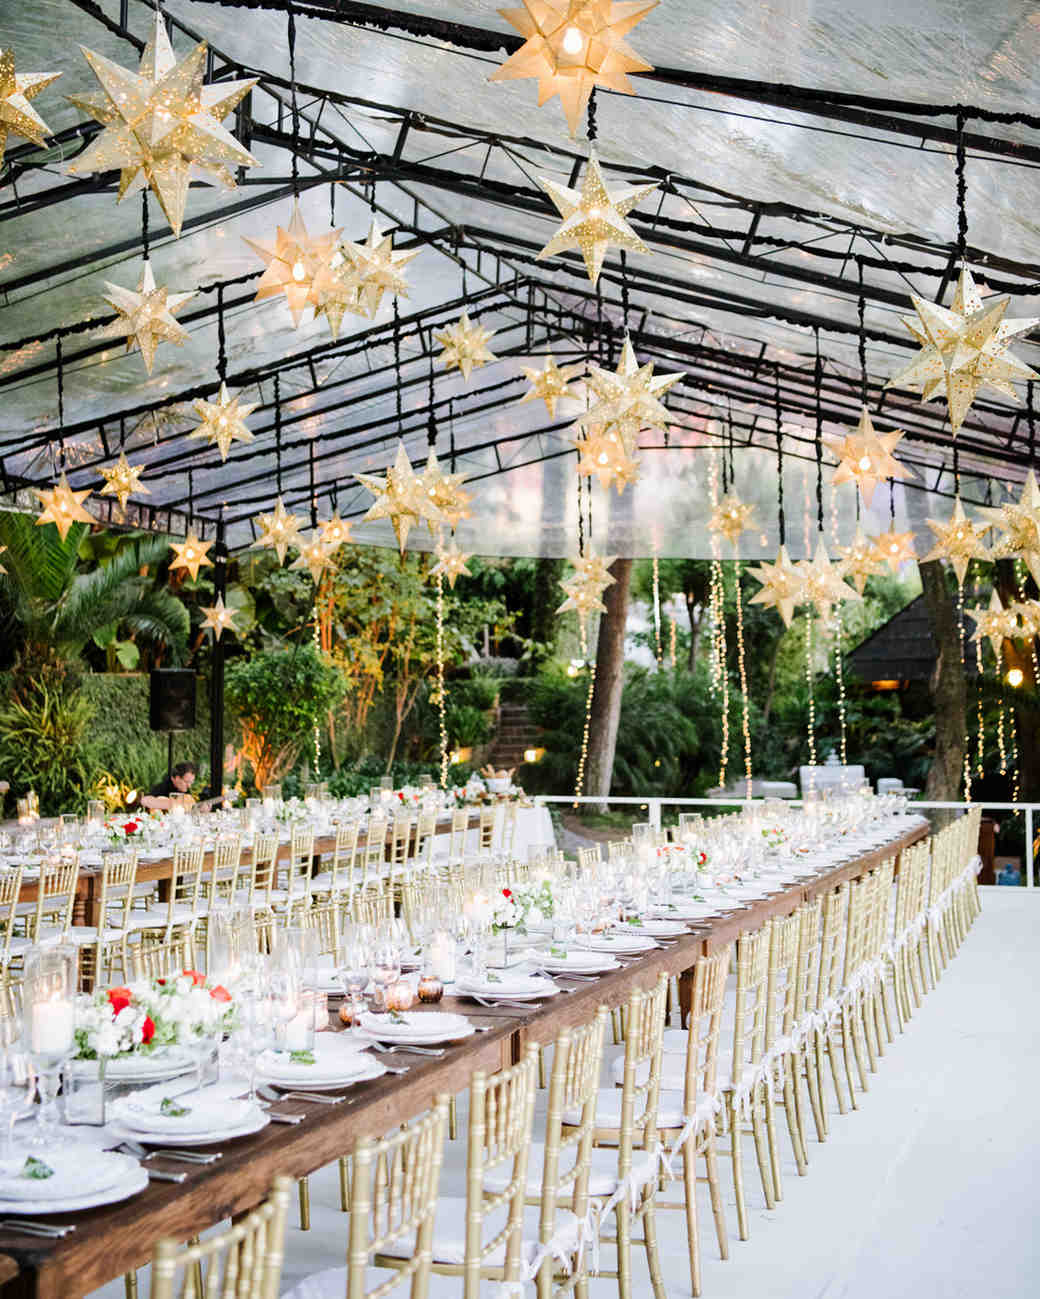 wedding reception tables with star lanterns hanging above